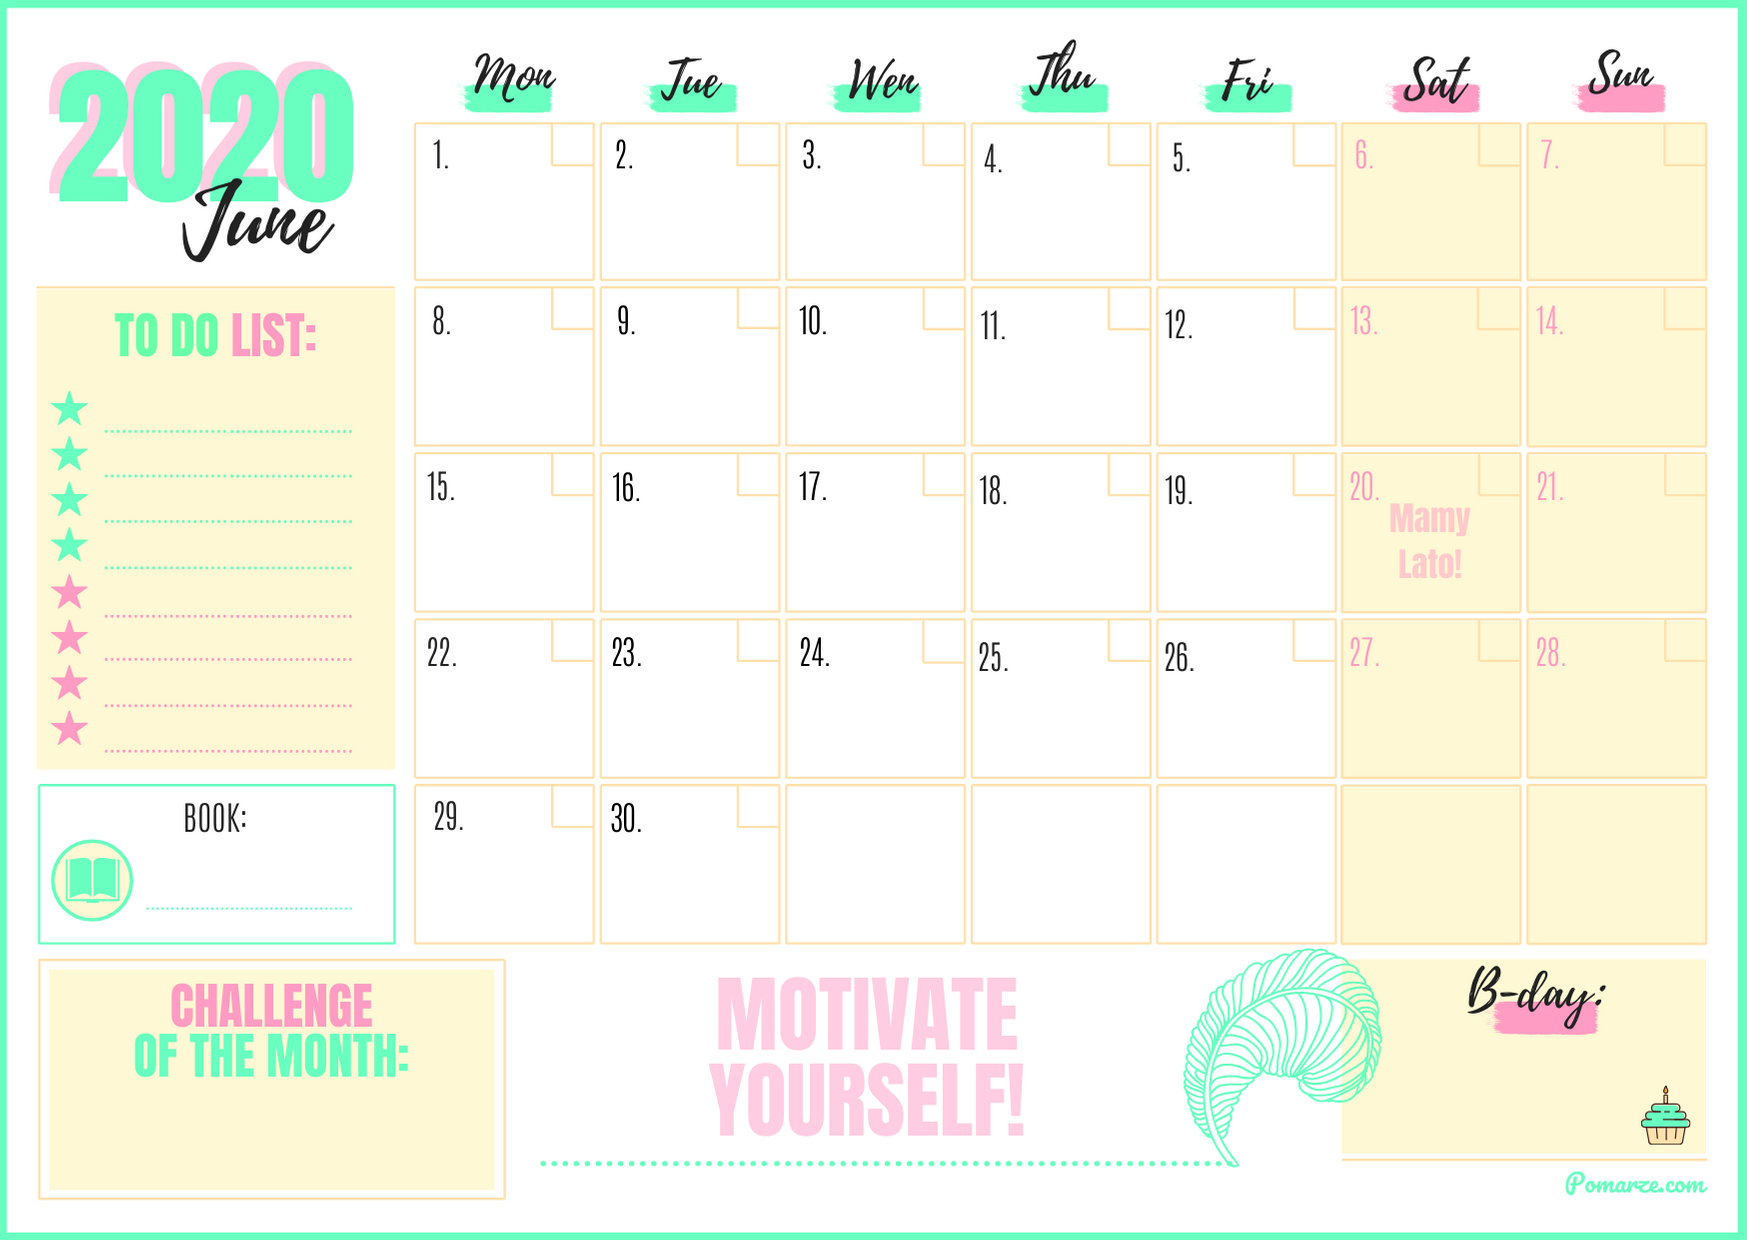 monthly calendar planner June 2020 download printable beautiful colorful